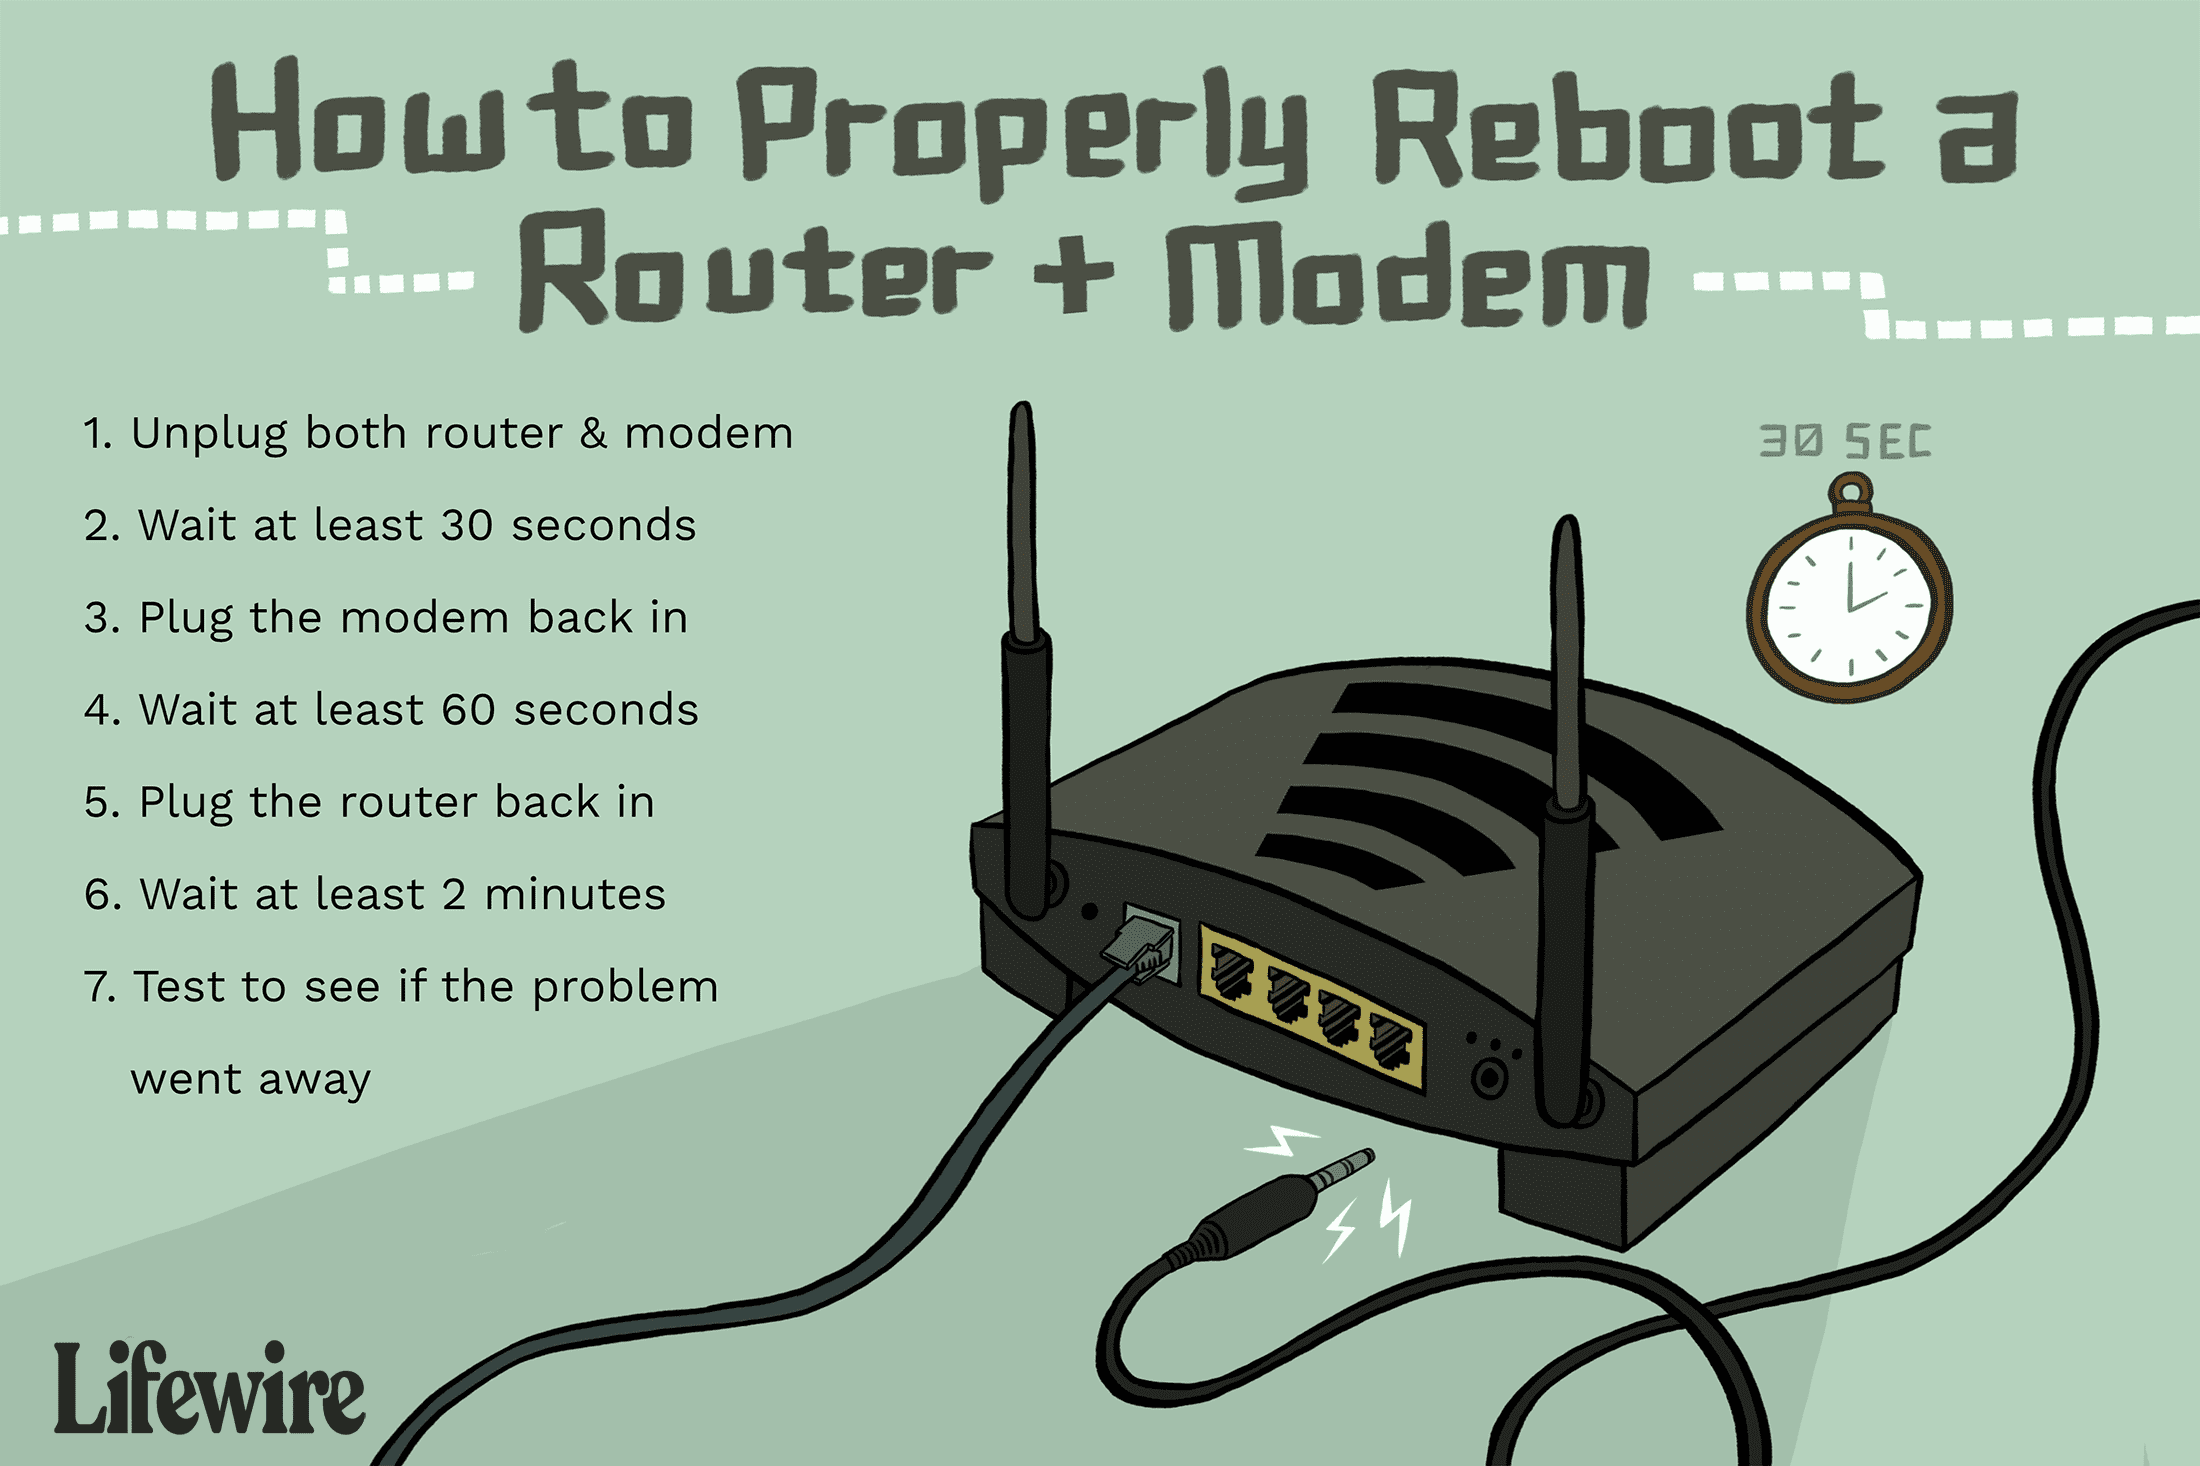 Illustration of a modem with the steps to reboot a router on the left-hand side of the image